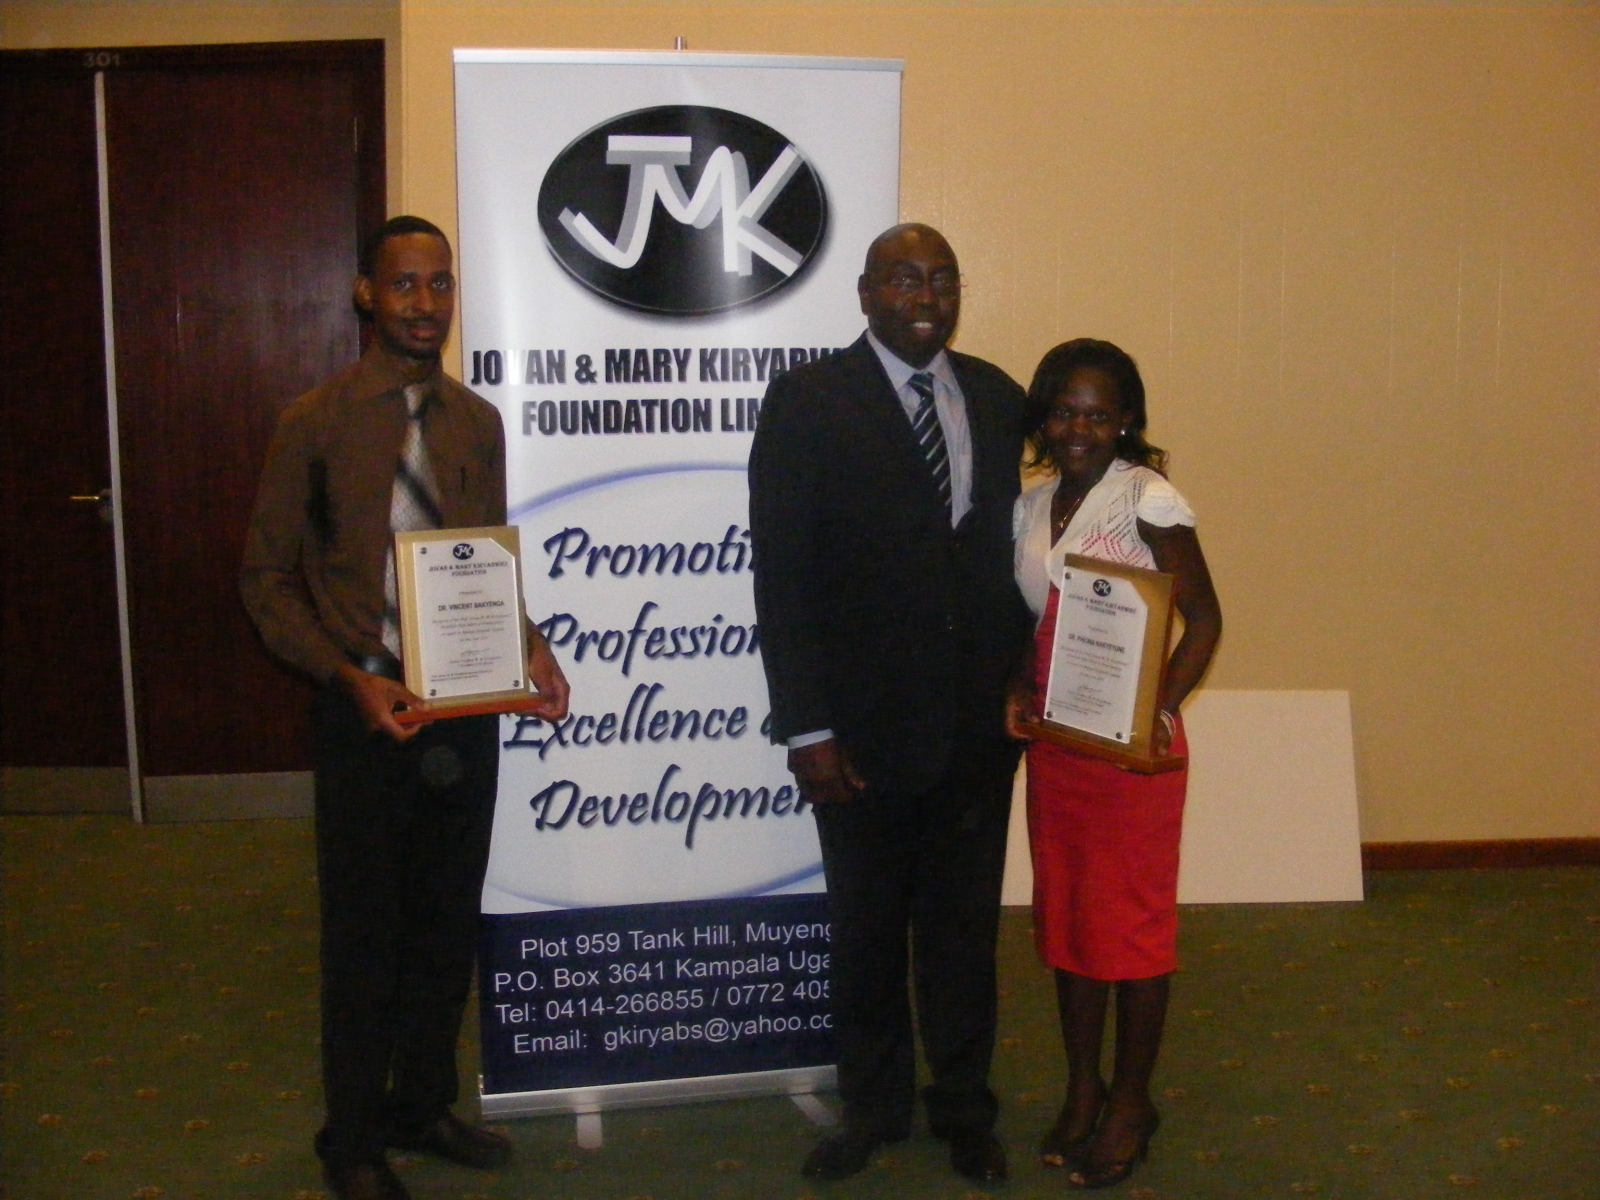 Handing over  JMK awards to Dr Vincent Bakyenga and Dr Phiona Nakyeyune as best interns in neurosurgery 2010 & 2011